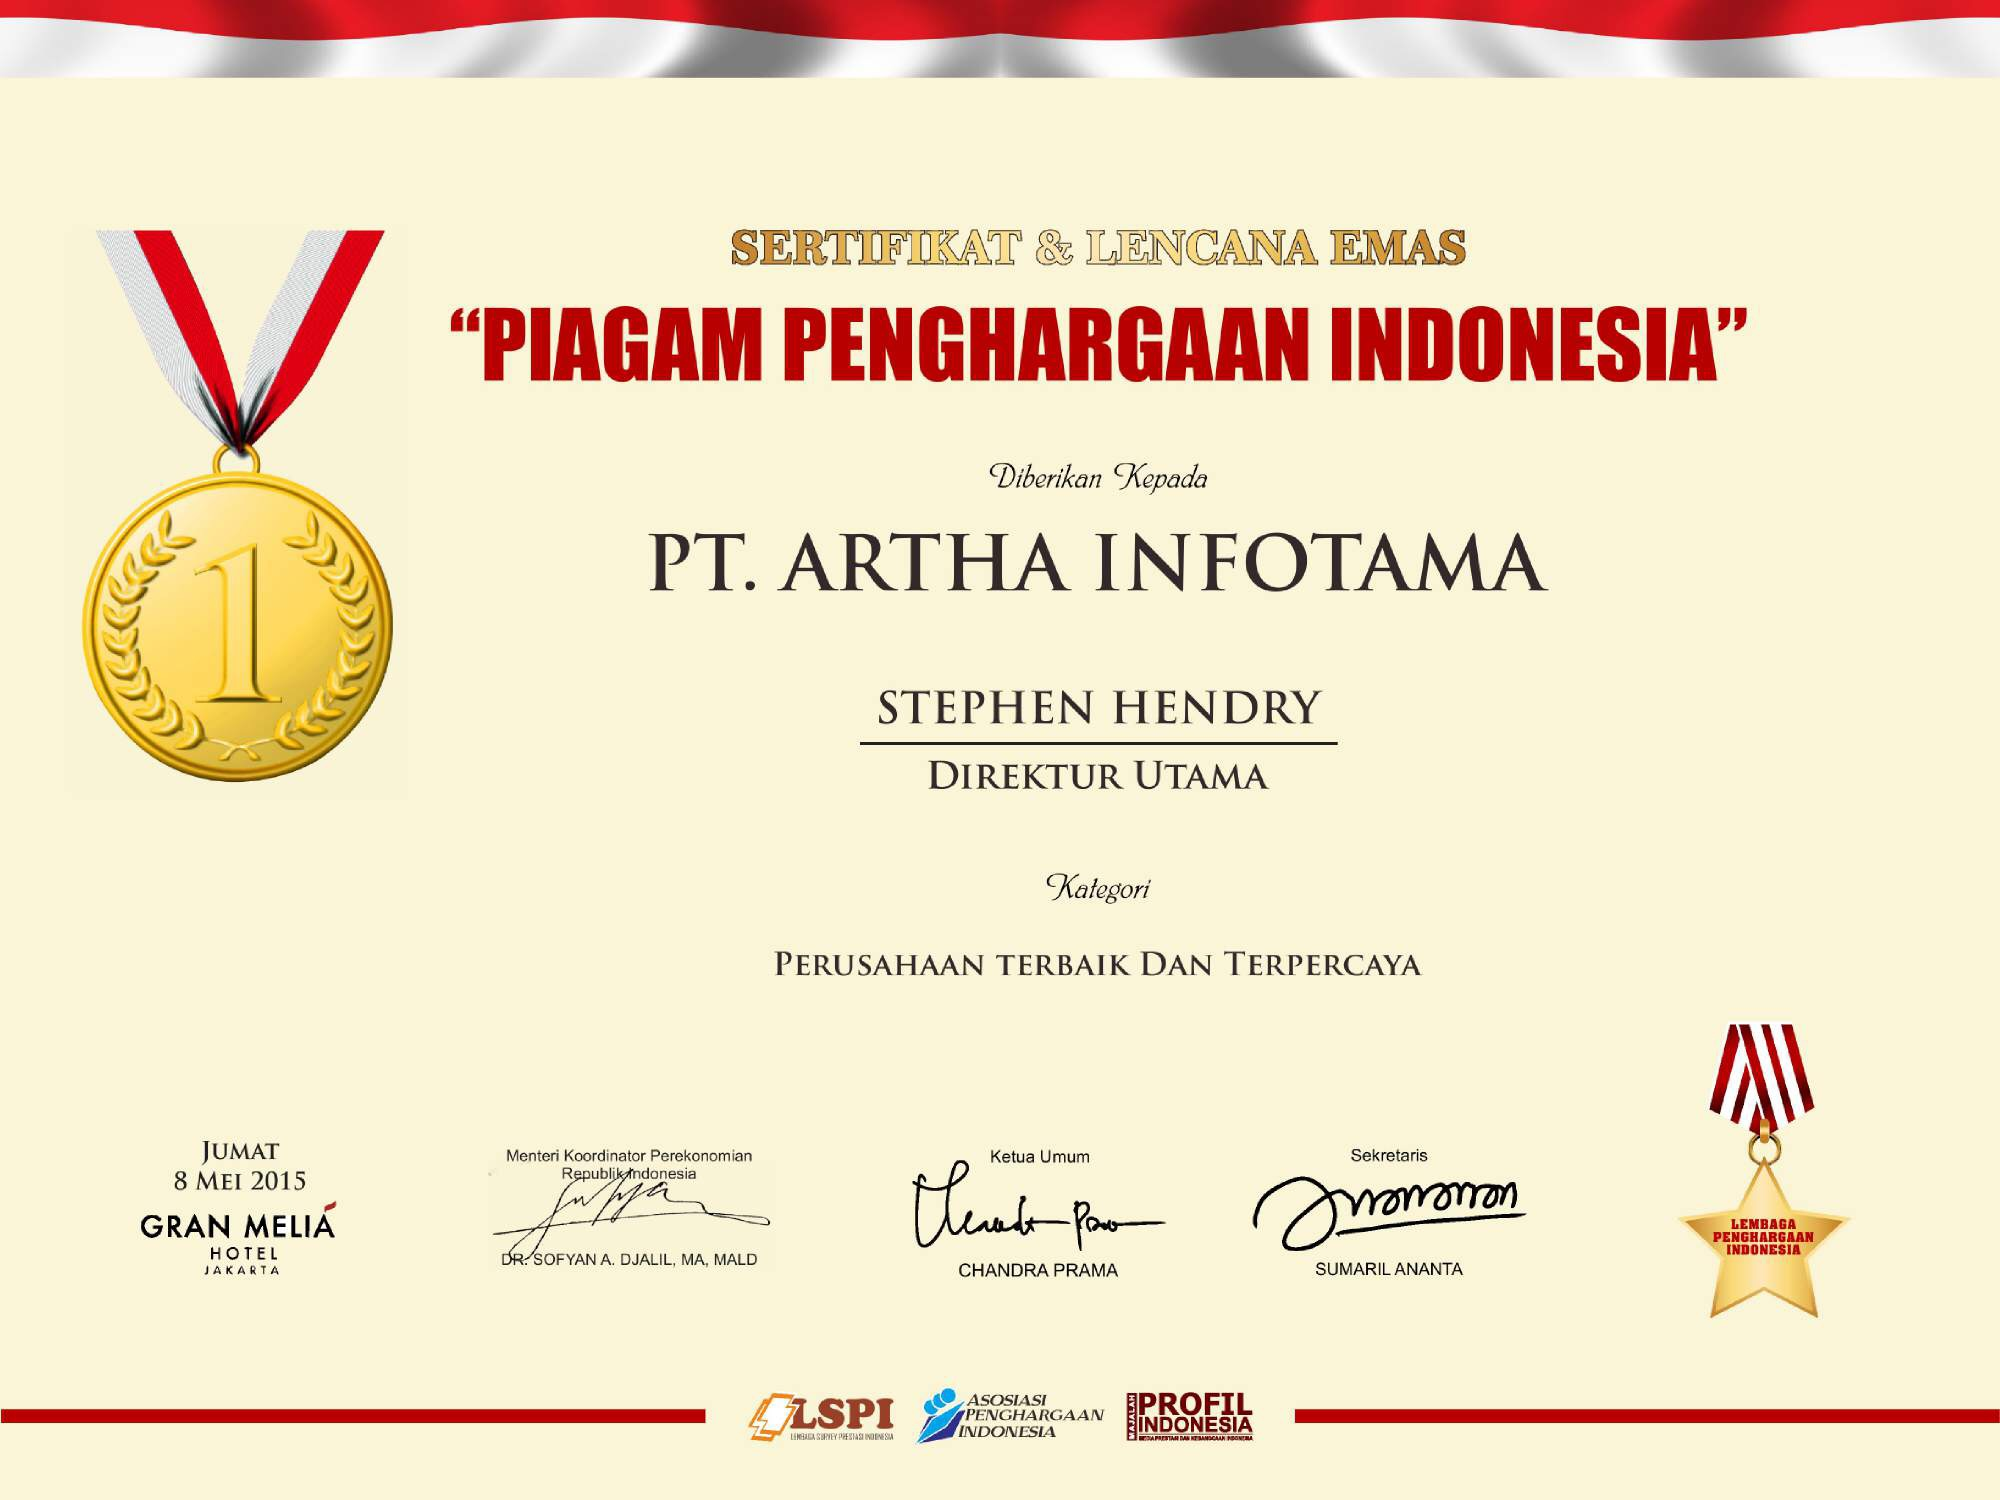 Piagam Penghargaan Indonesia - The Best & Trusted Company 2015